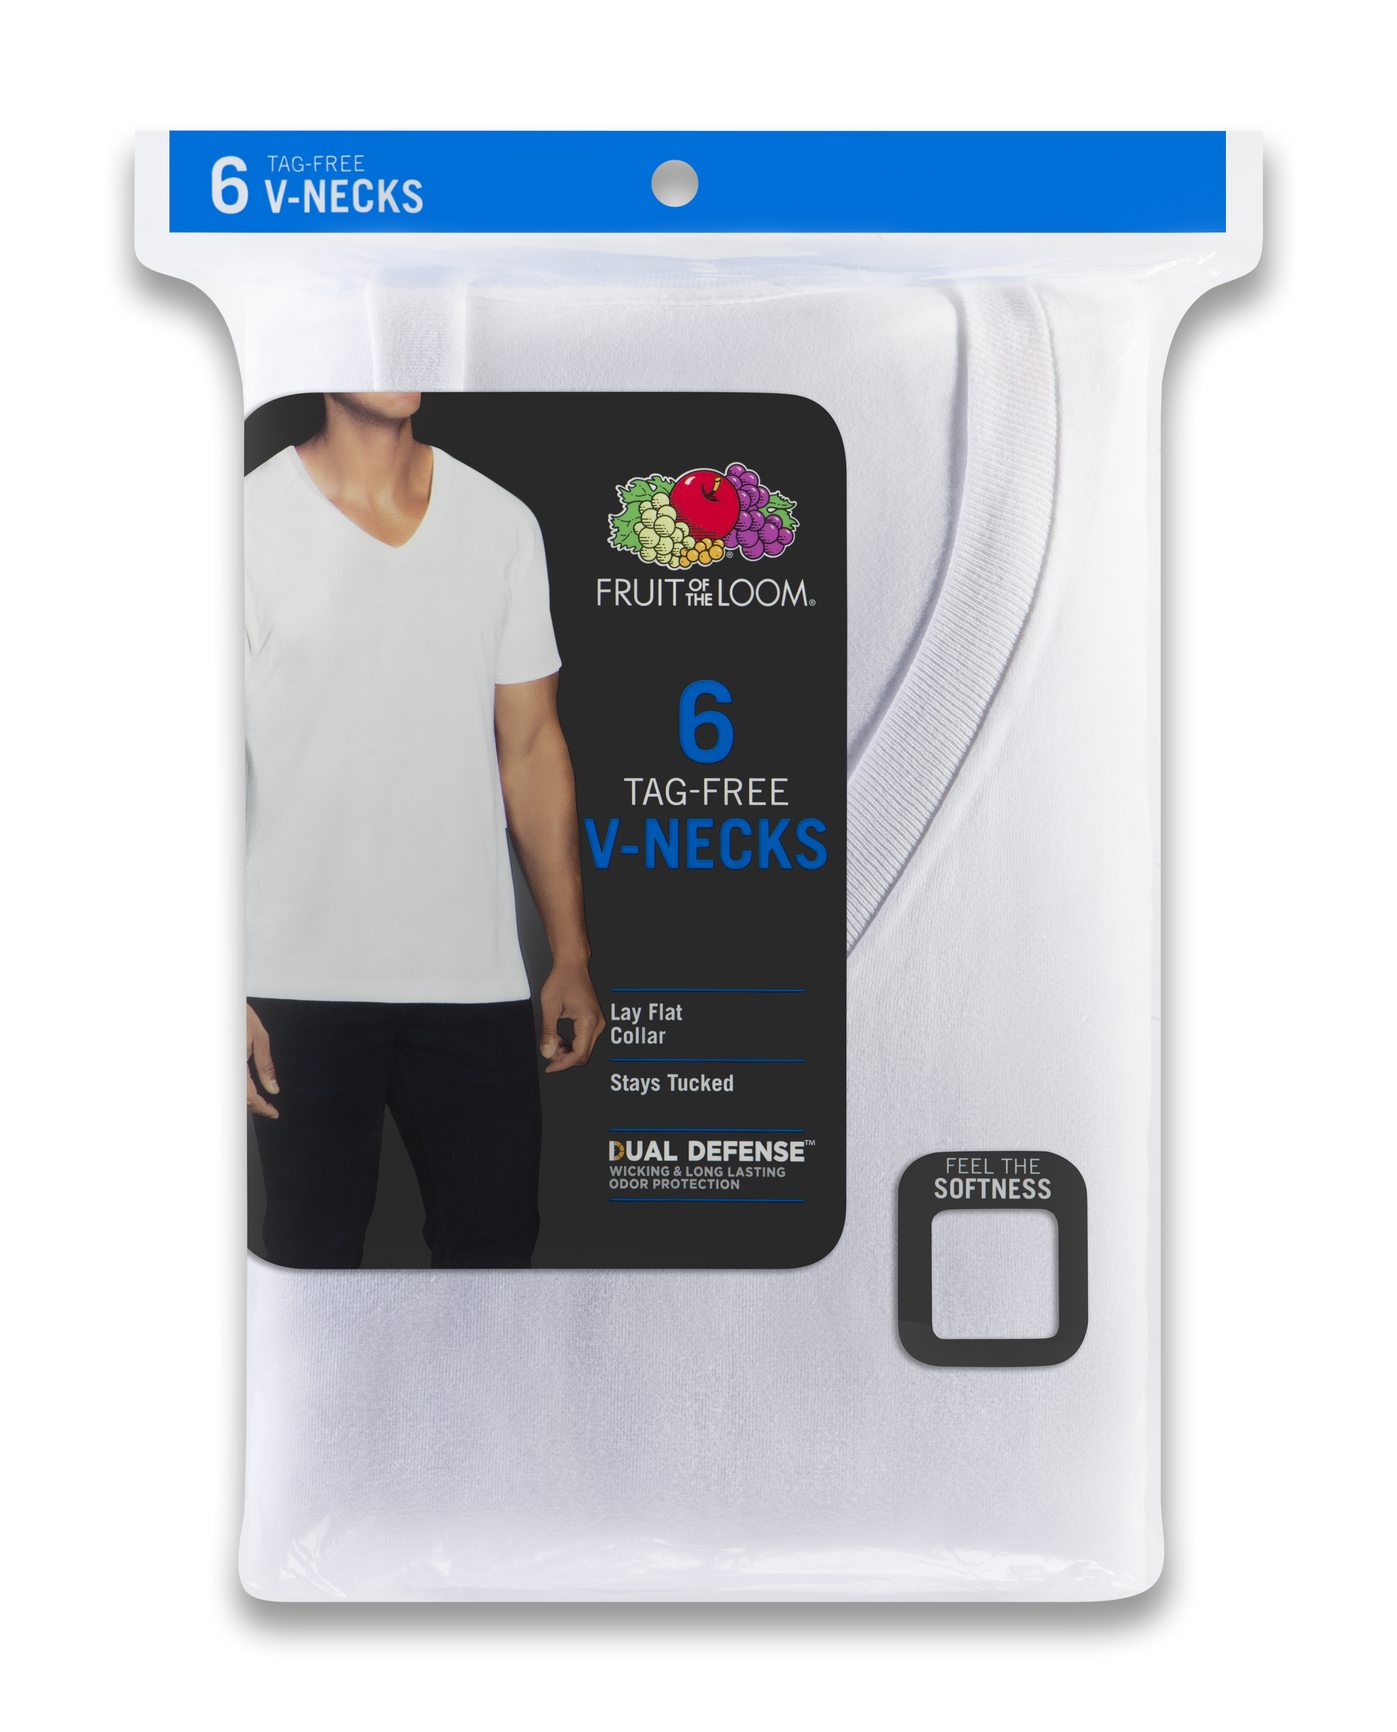 Dating fruit of the loom tags